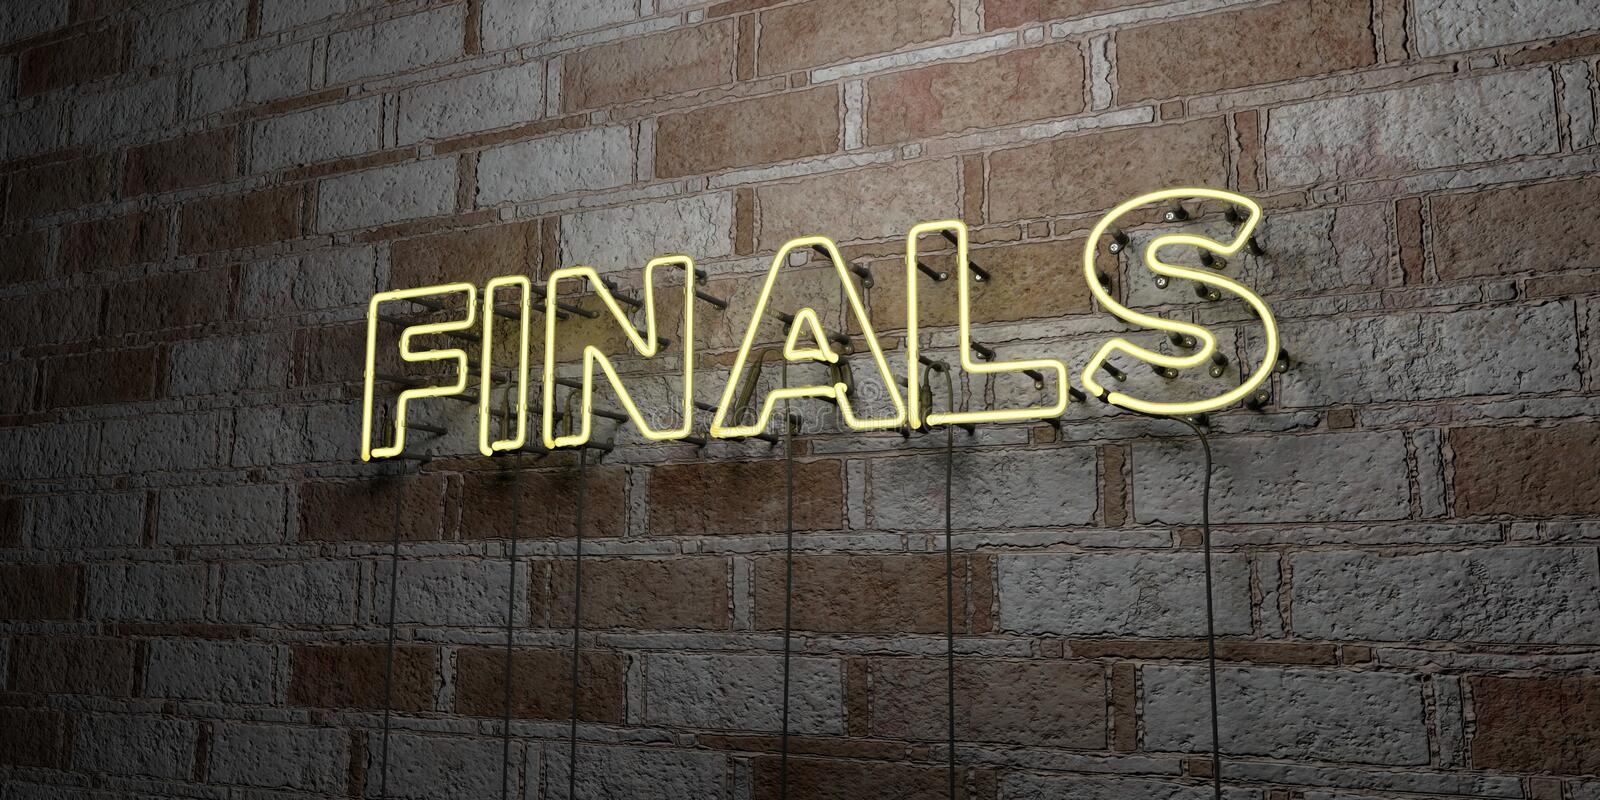 FINALS - Glowing Neon Sign on stonework wall - 3D rendered royalty free stock illustration. Can be used for online banner ads and direct mailers vector illustration